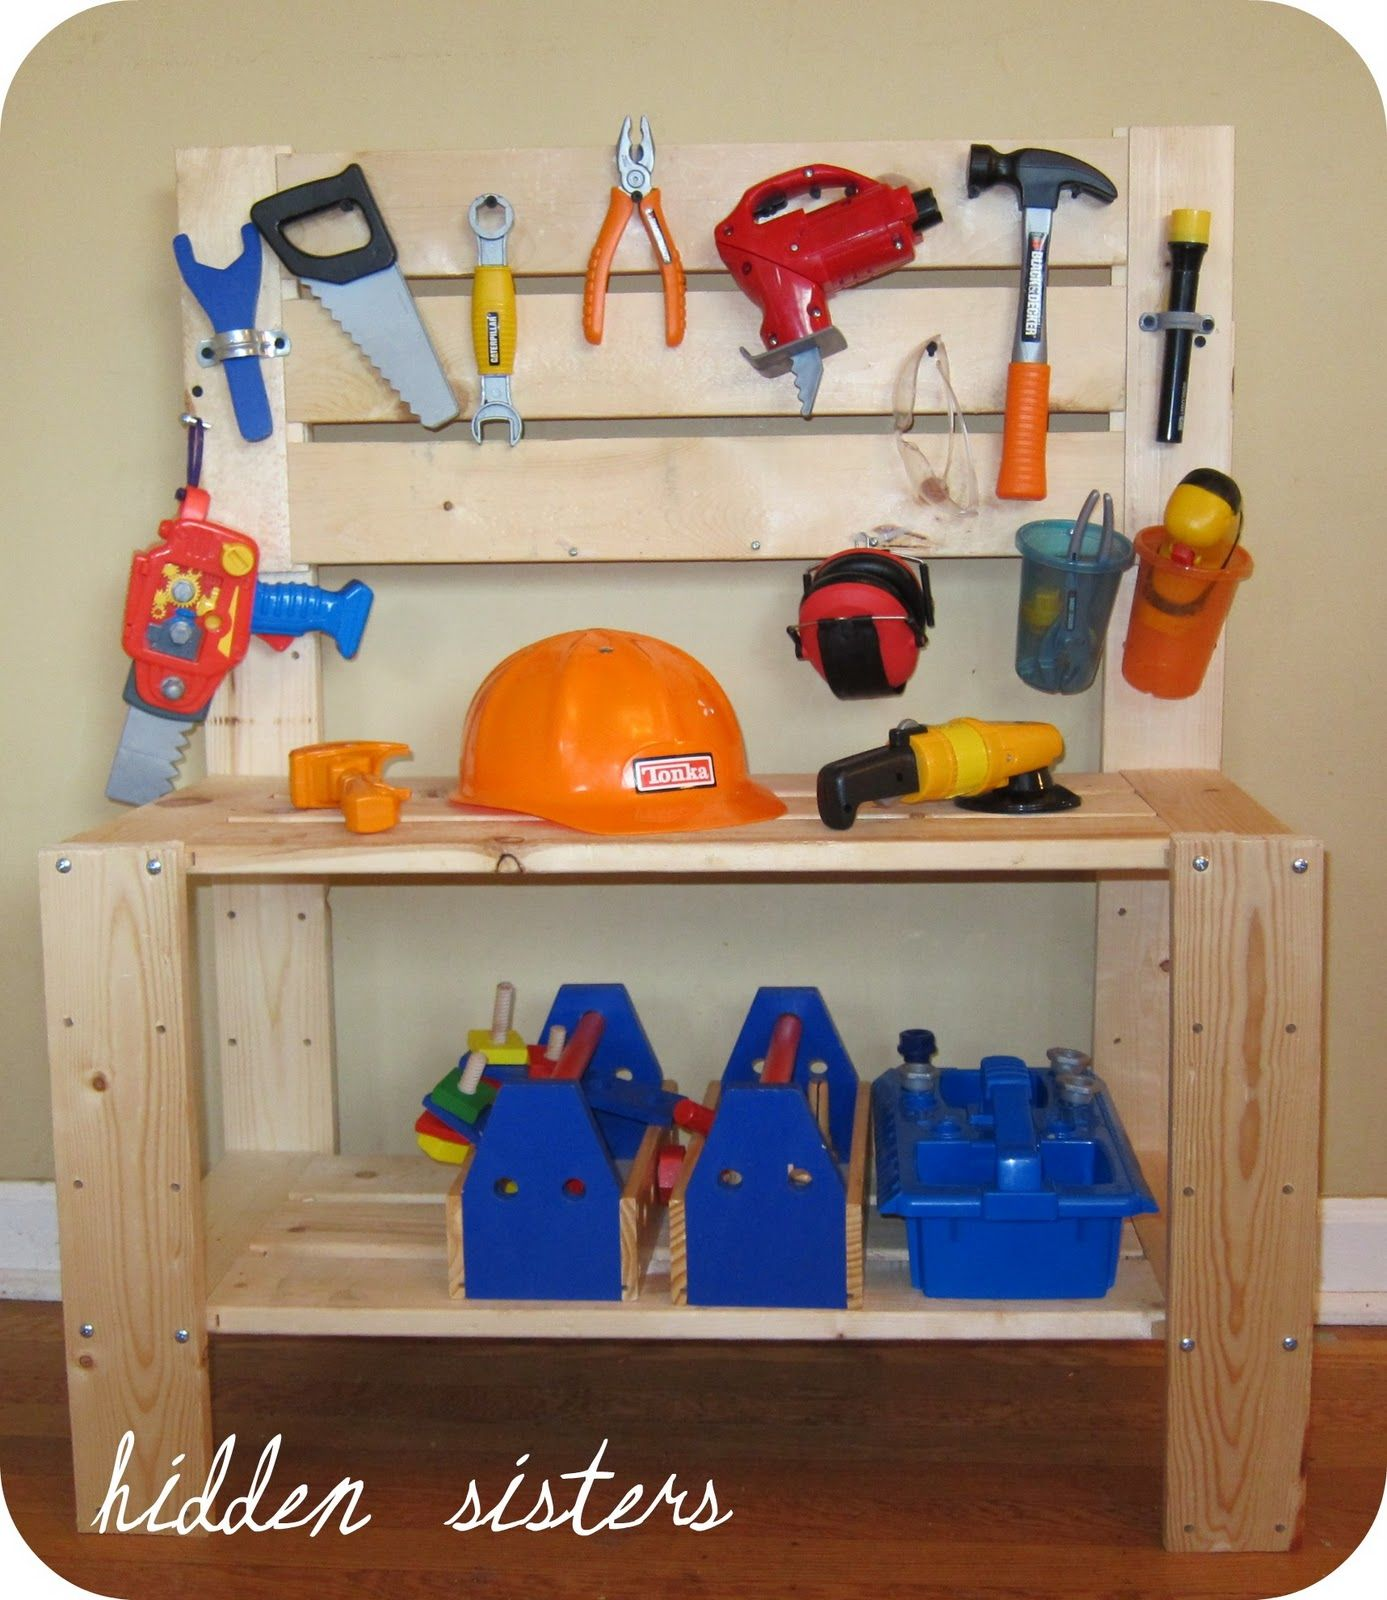 Best Diy Tools Hidden Sisters Diy Inspiration A Childrens Tool Bench Such A